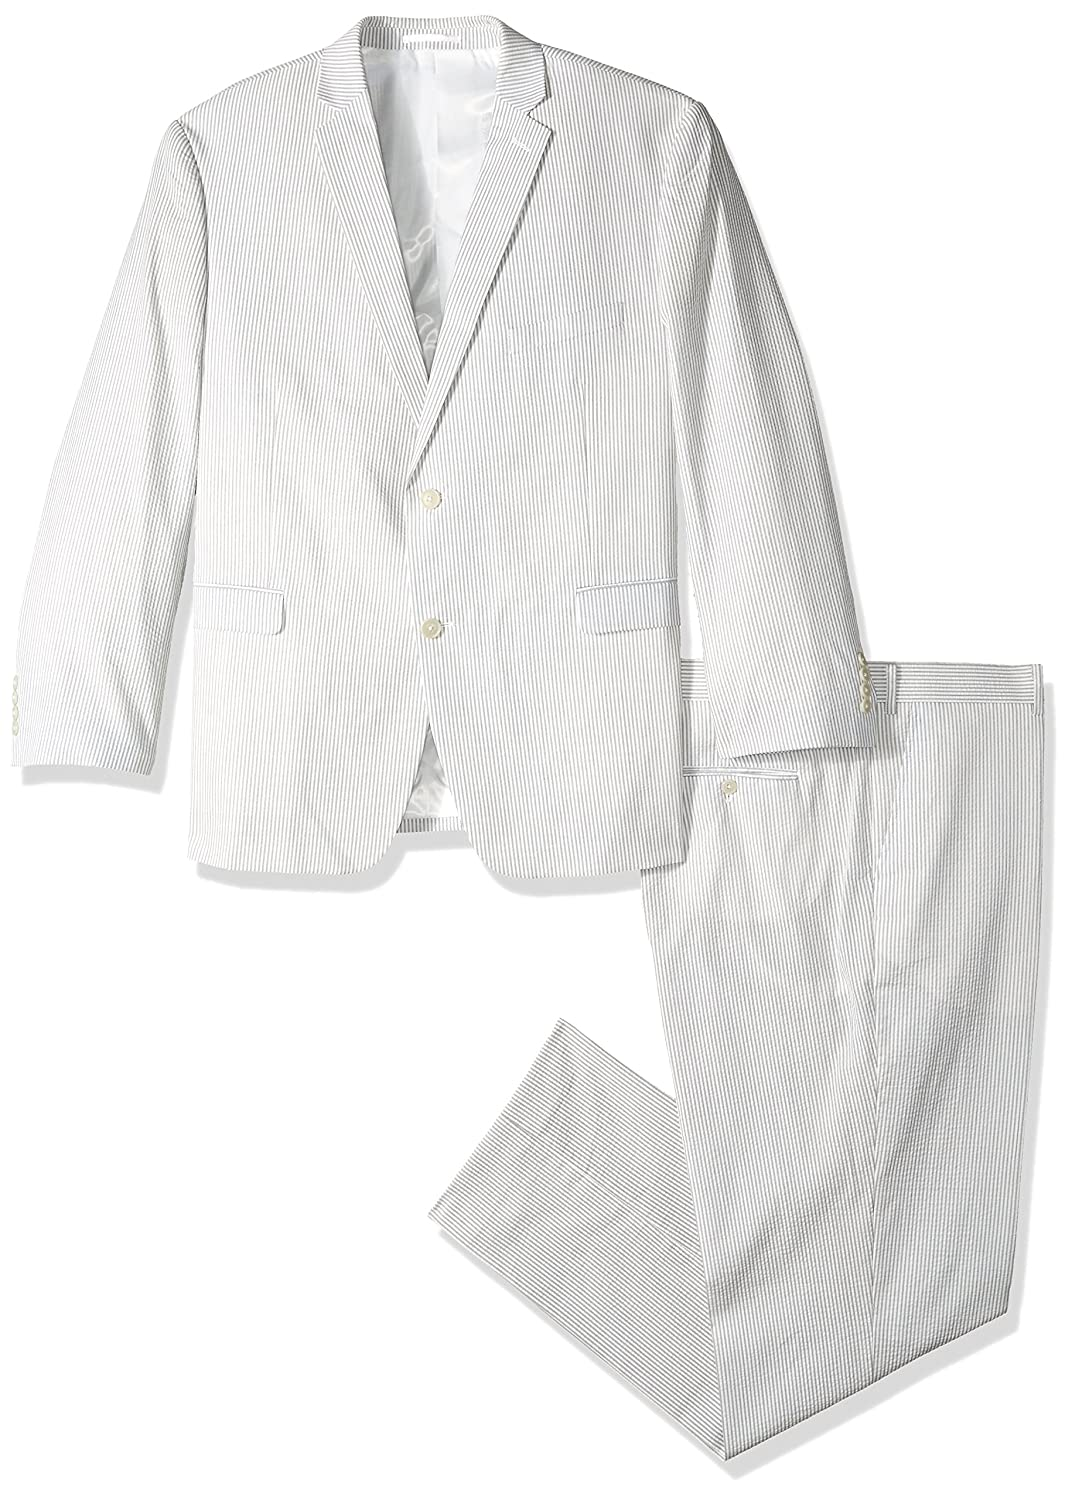 U.S Polo Assn Mens Big and Tall Cotton Suit